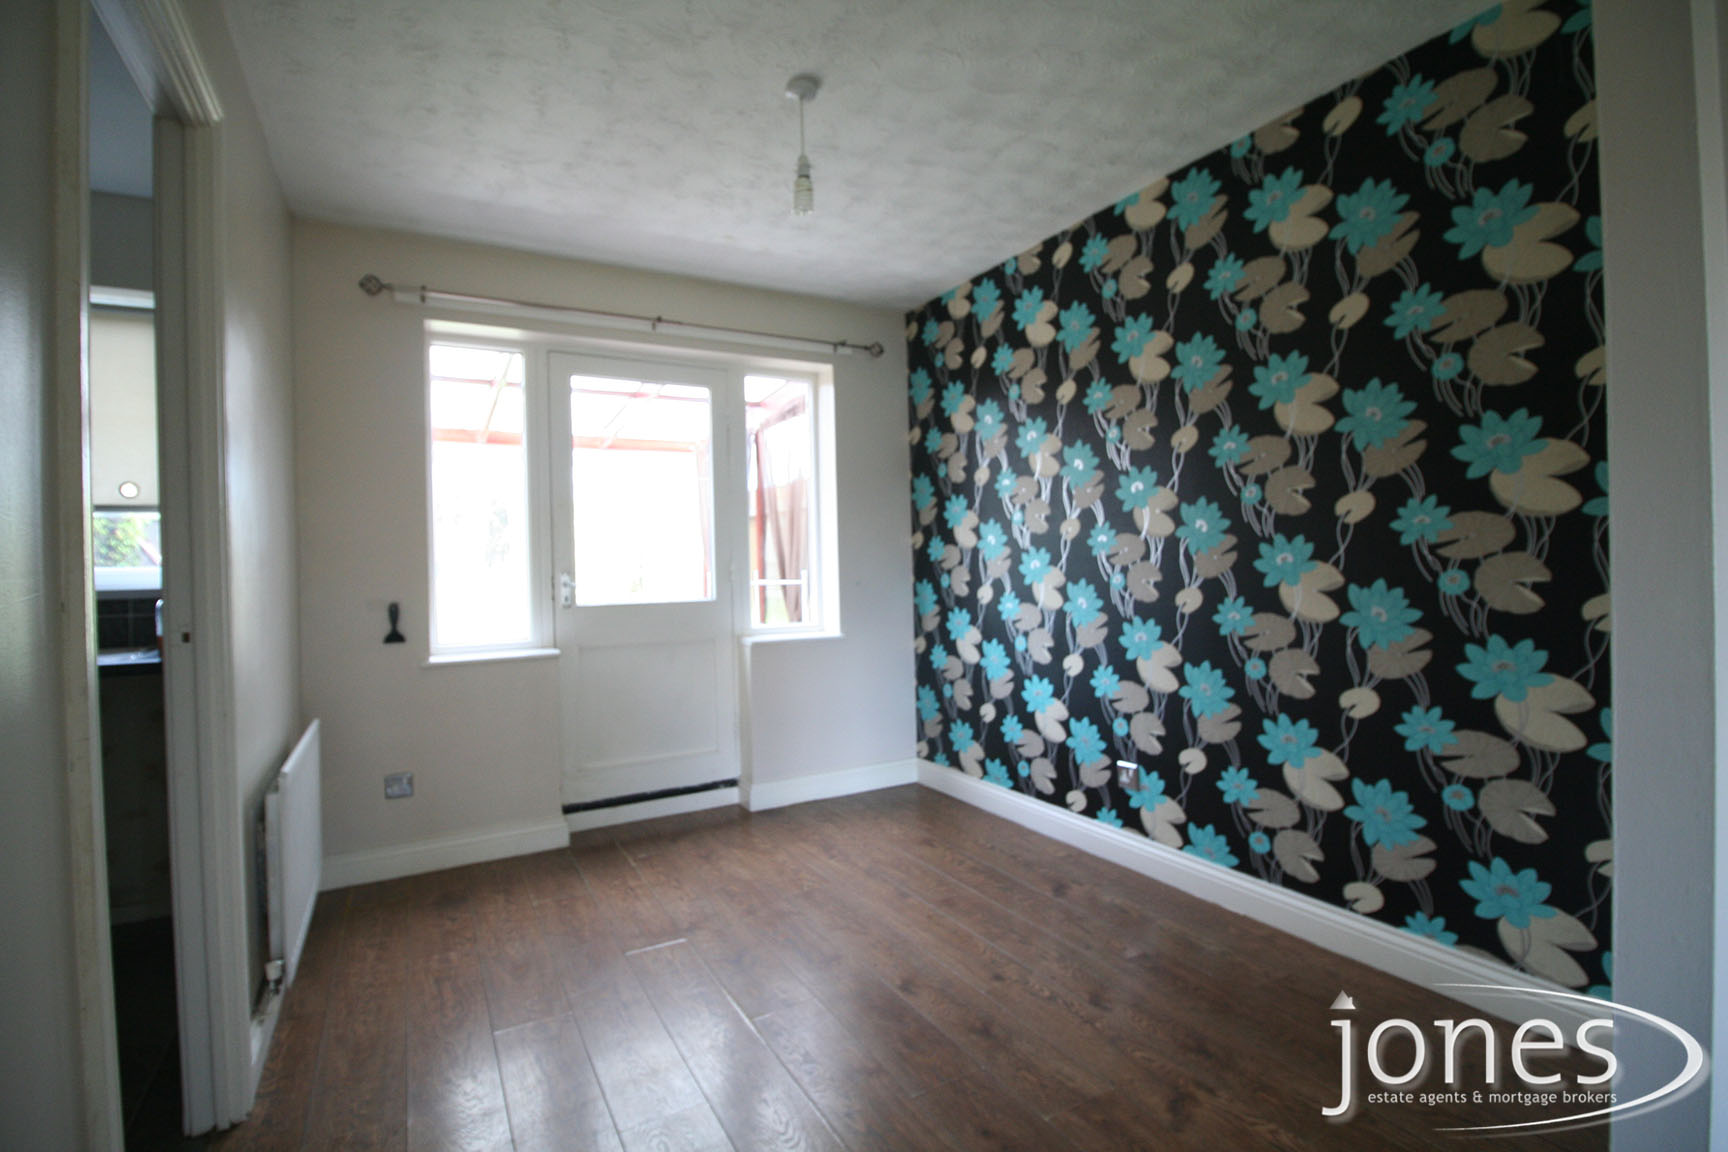 Home for Sale Let - Photo 03 Gatesgarth Close,  Bakers Mead, Hartlepool, TS24 8RB